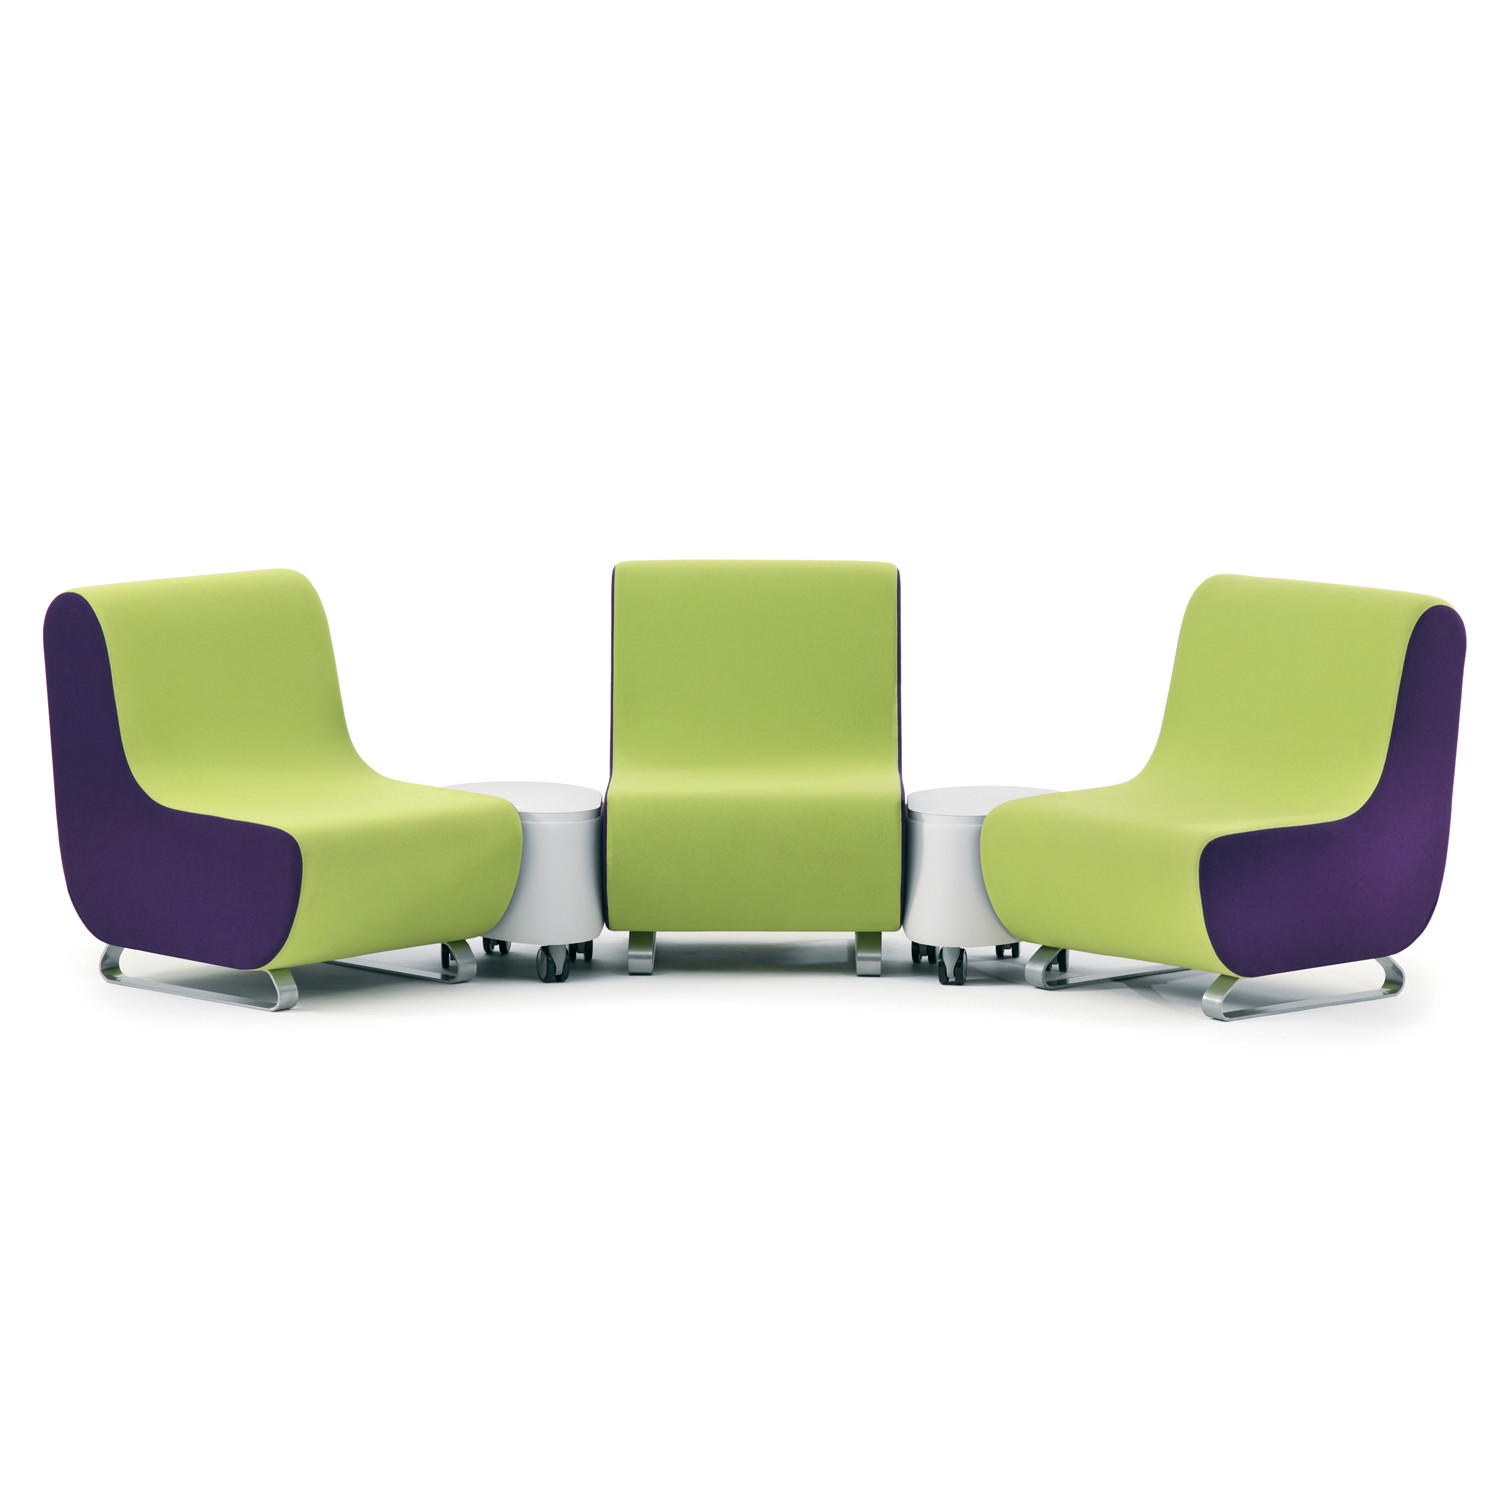 Parade Modular Seating